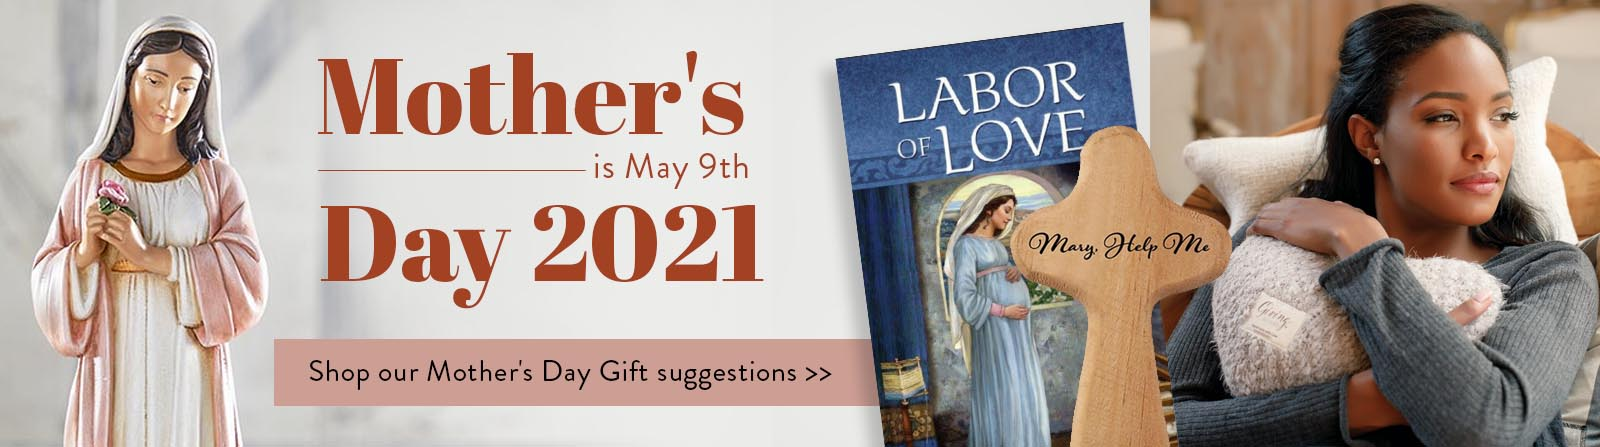 Mother's Day is May 9th Day 2021. Shop our Mother's Day Gift Suggestions